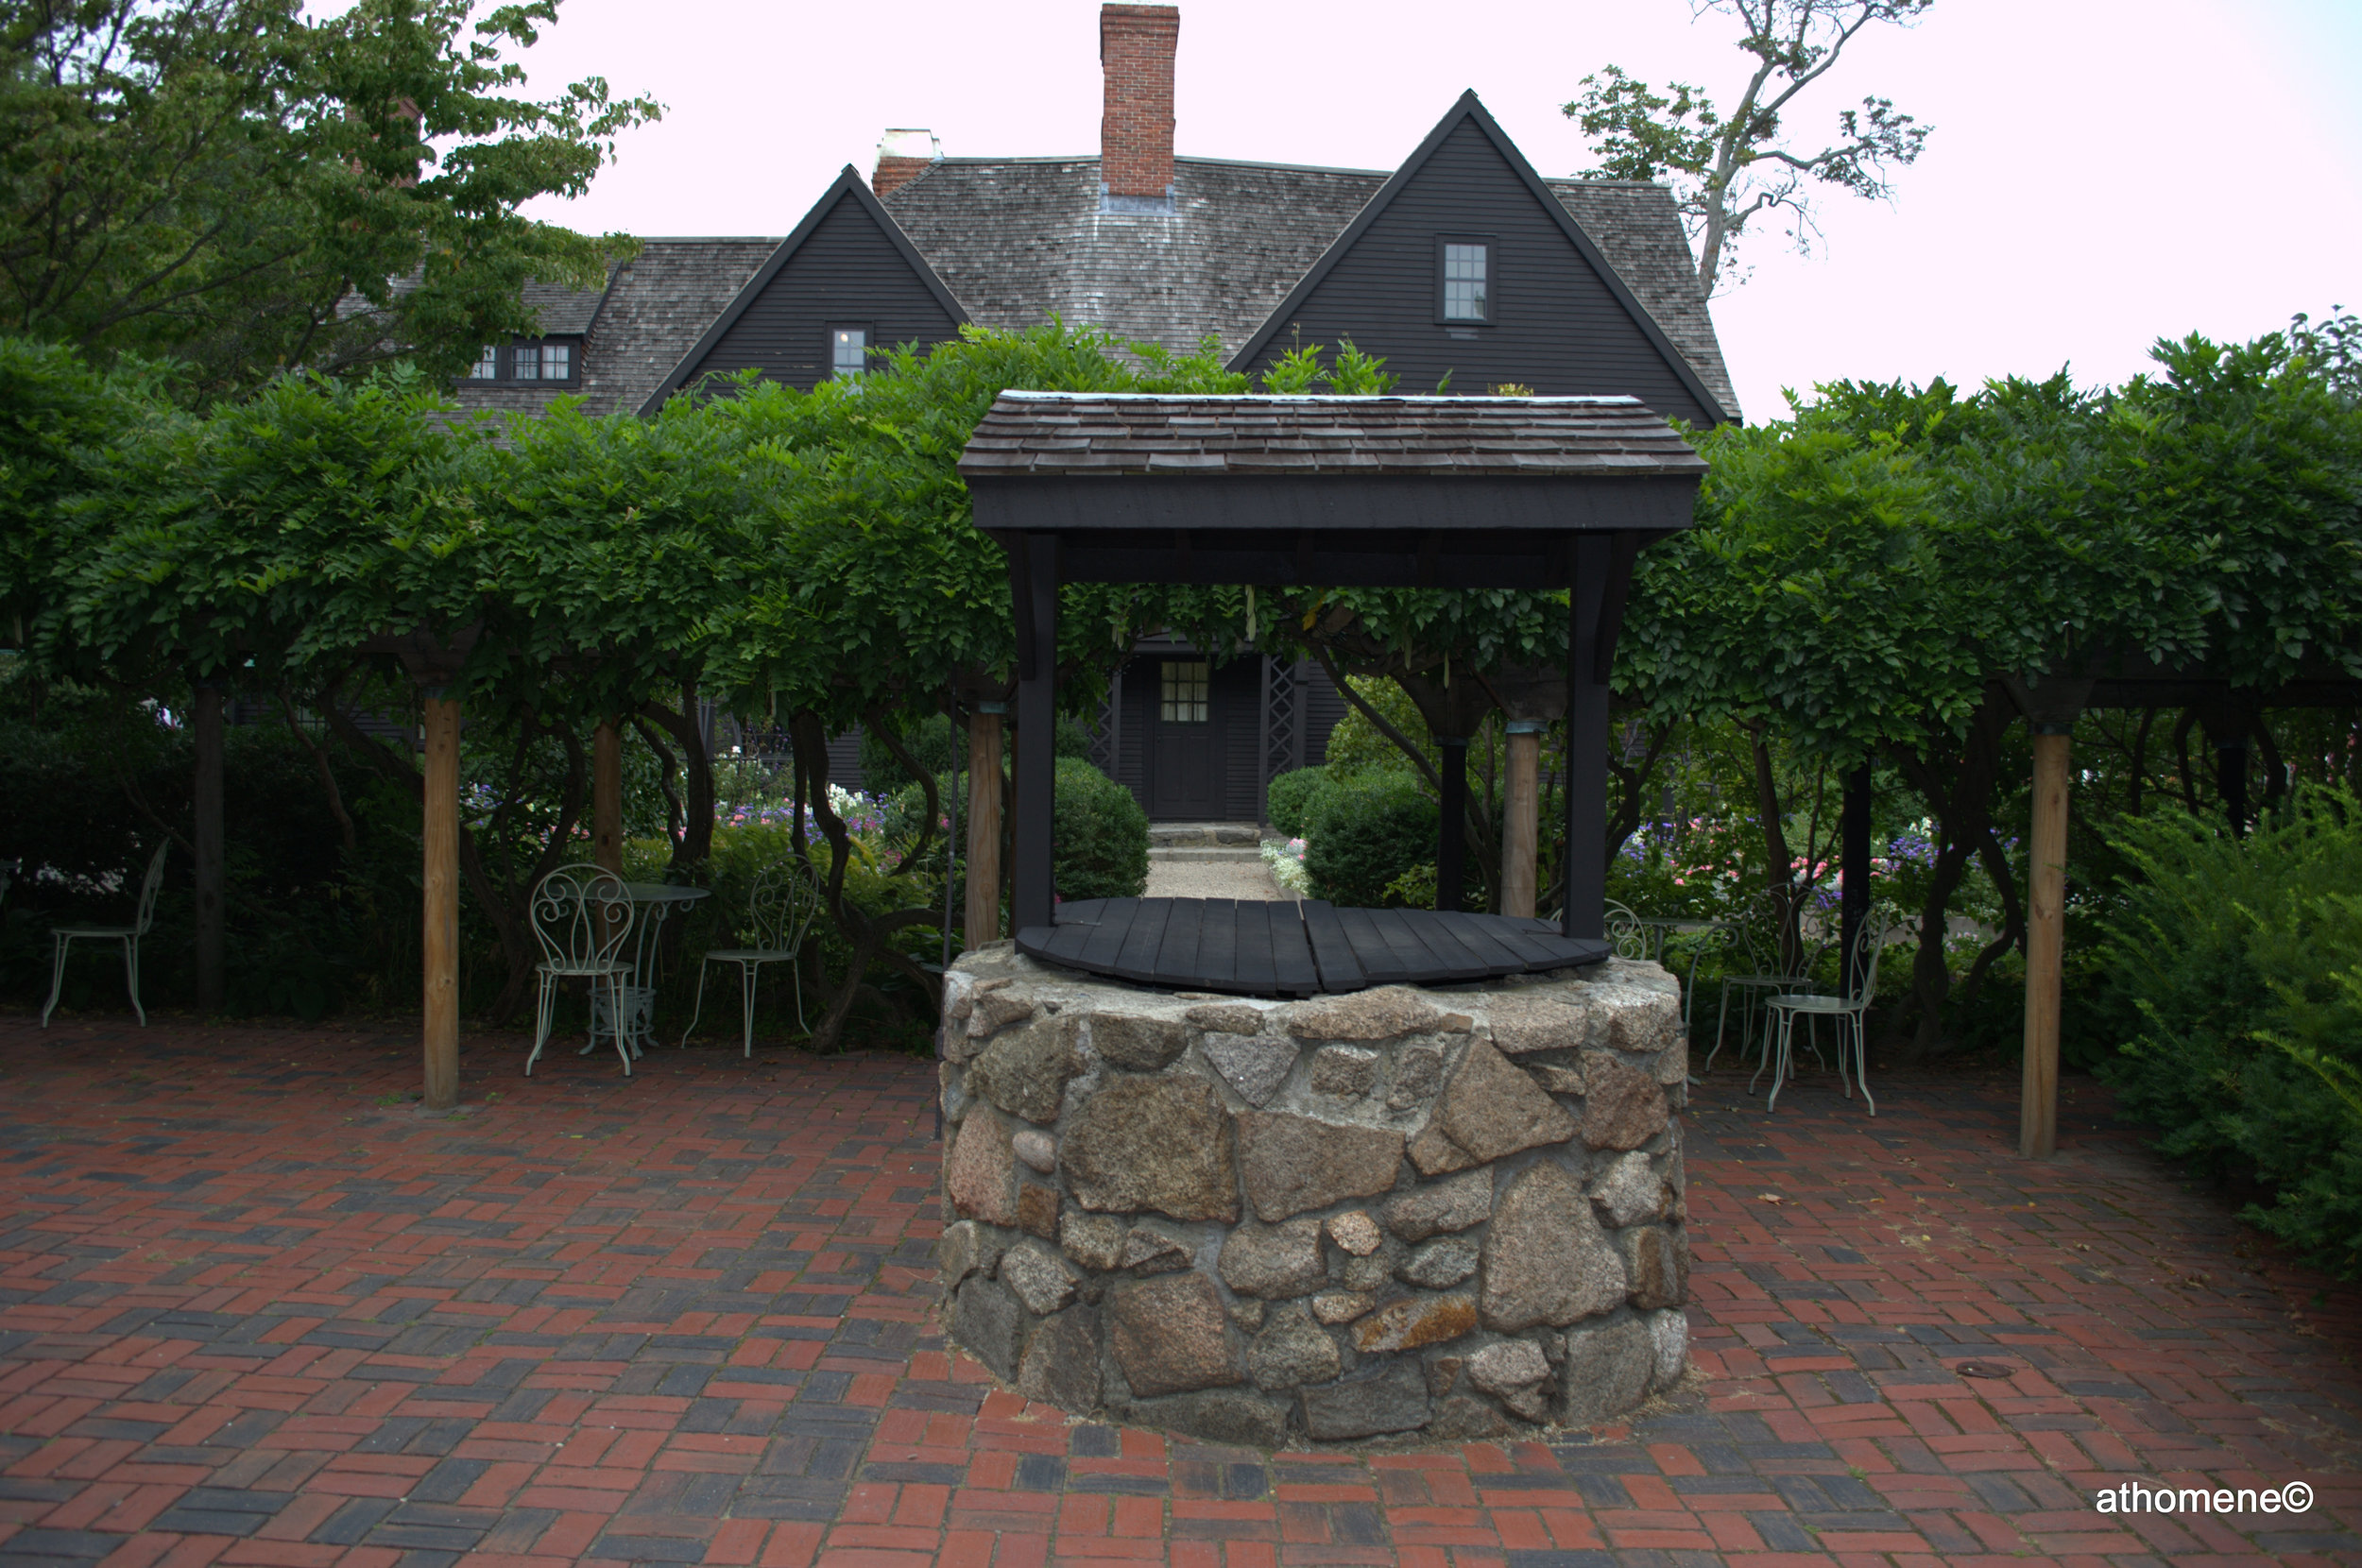 The House of the Seven Gables, Salem, MA